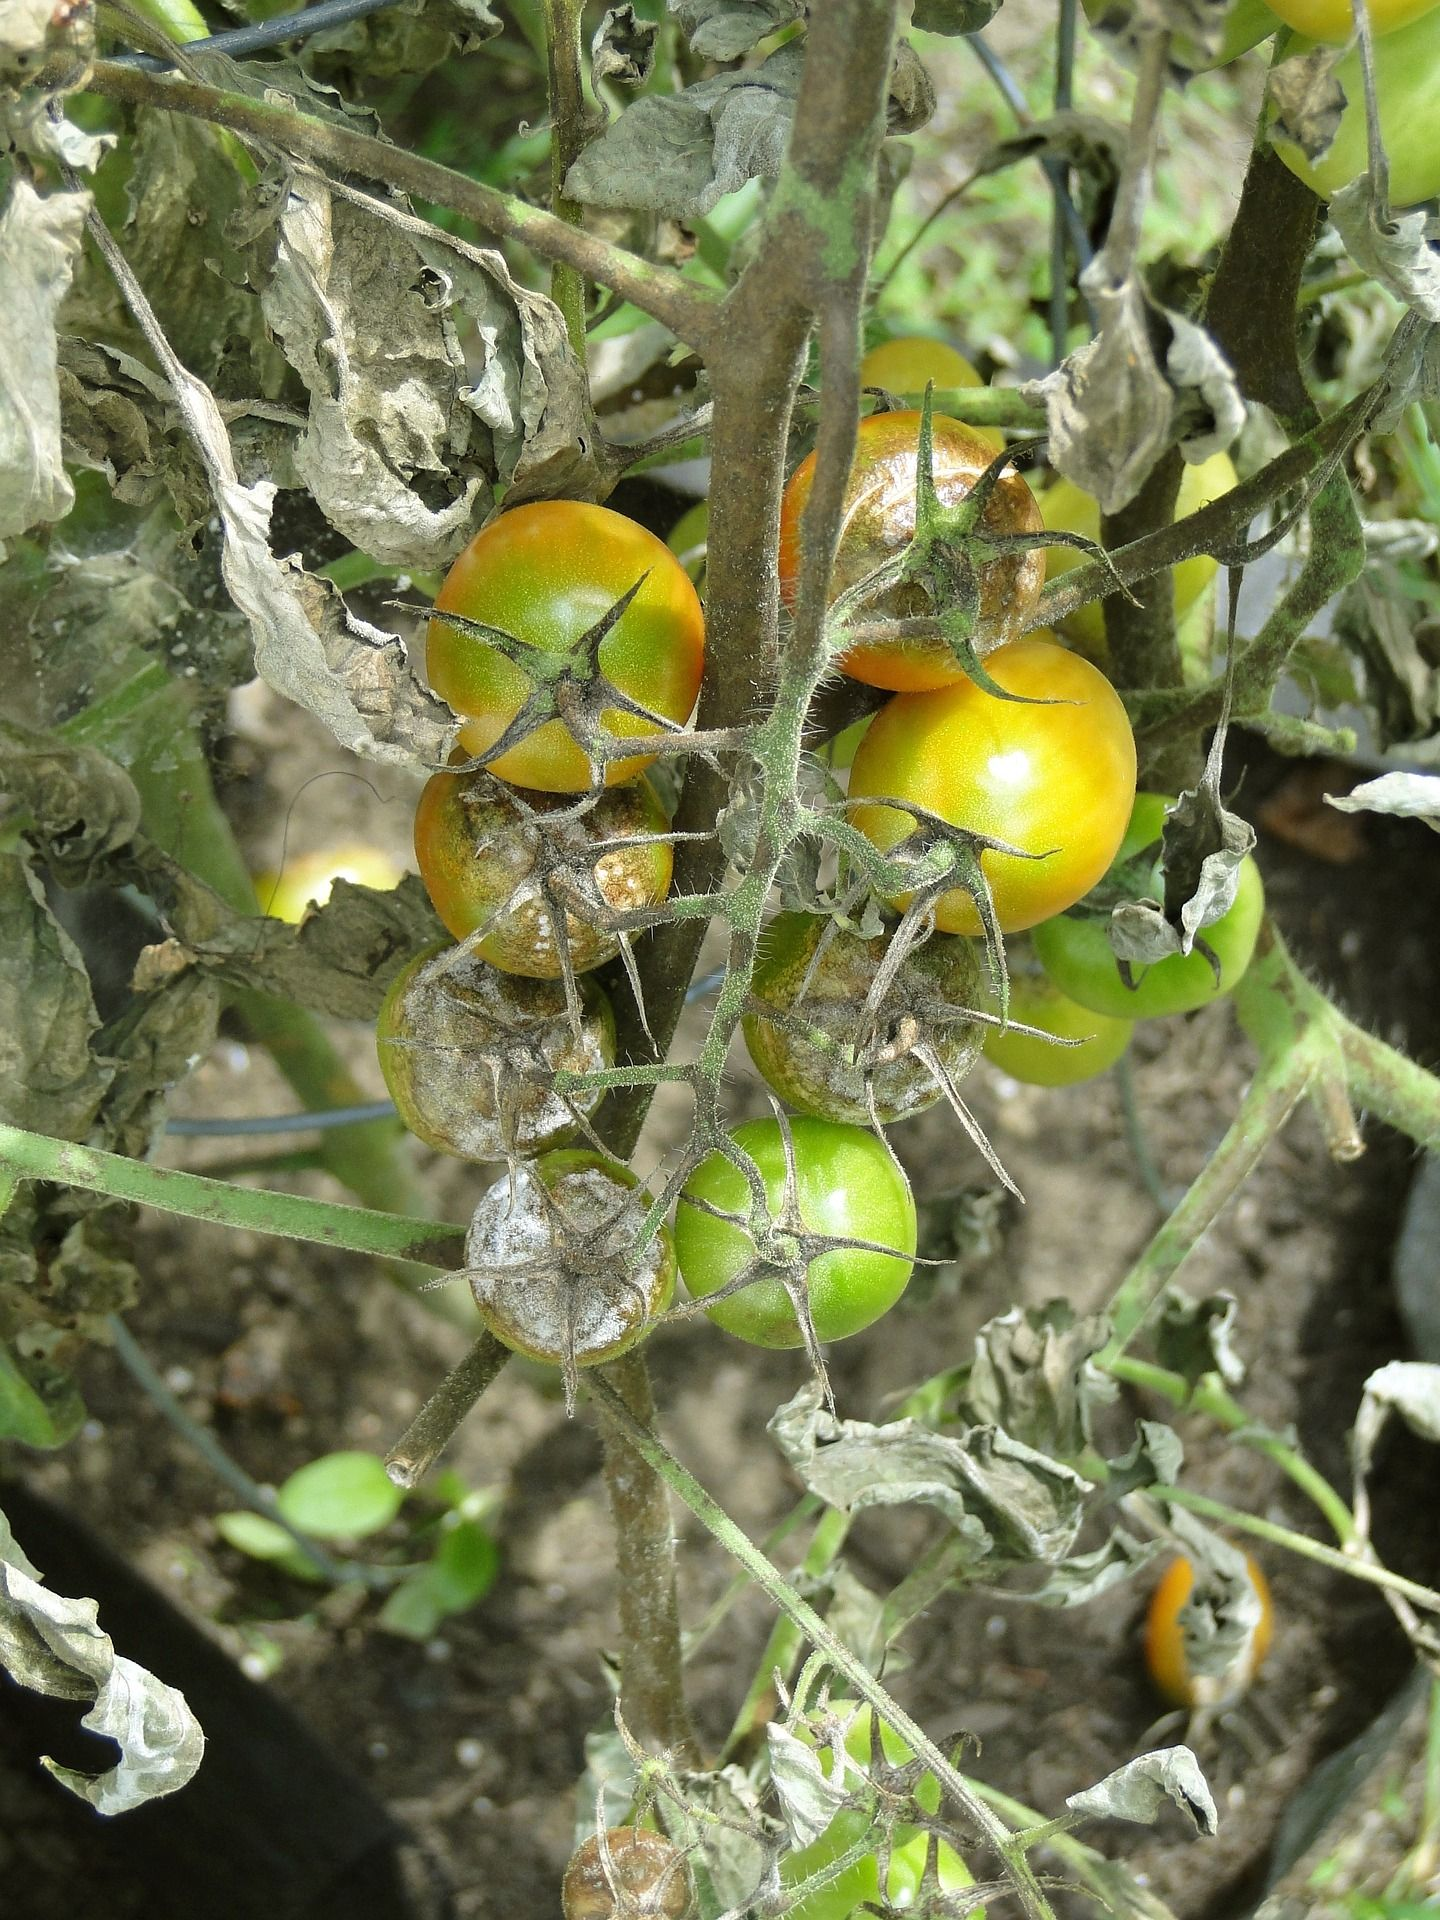 Tomato Leaf Problems A Visual Guide Tomato Disease Growing Tomato Plants Plant Diseases